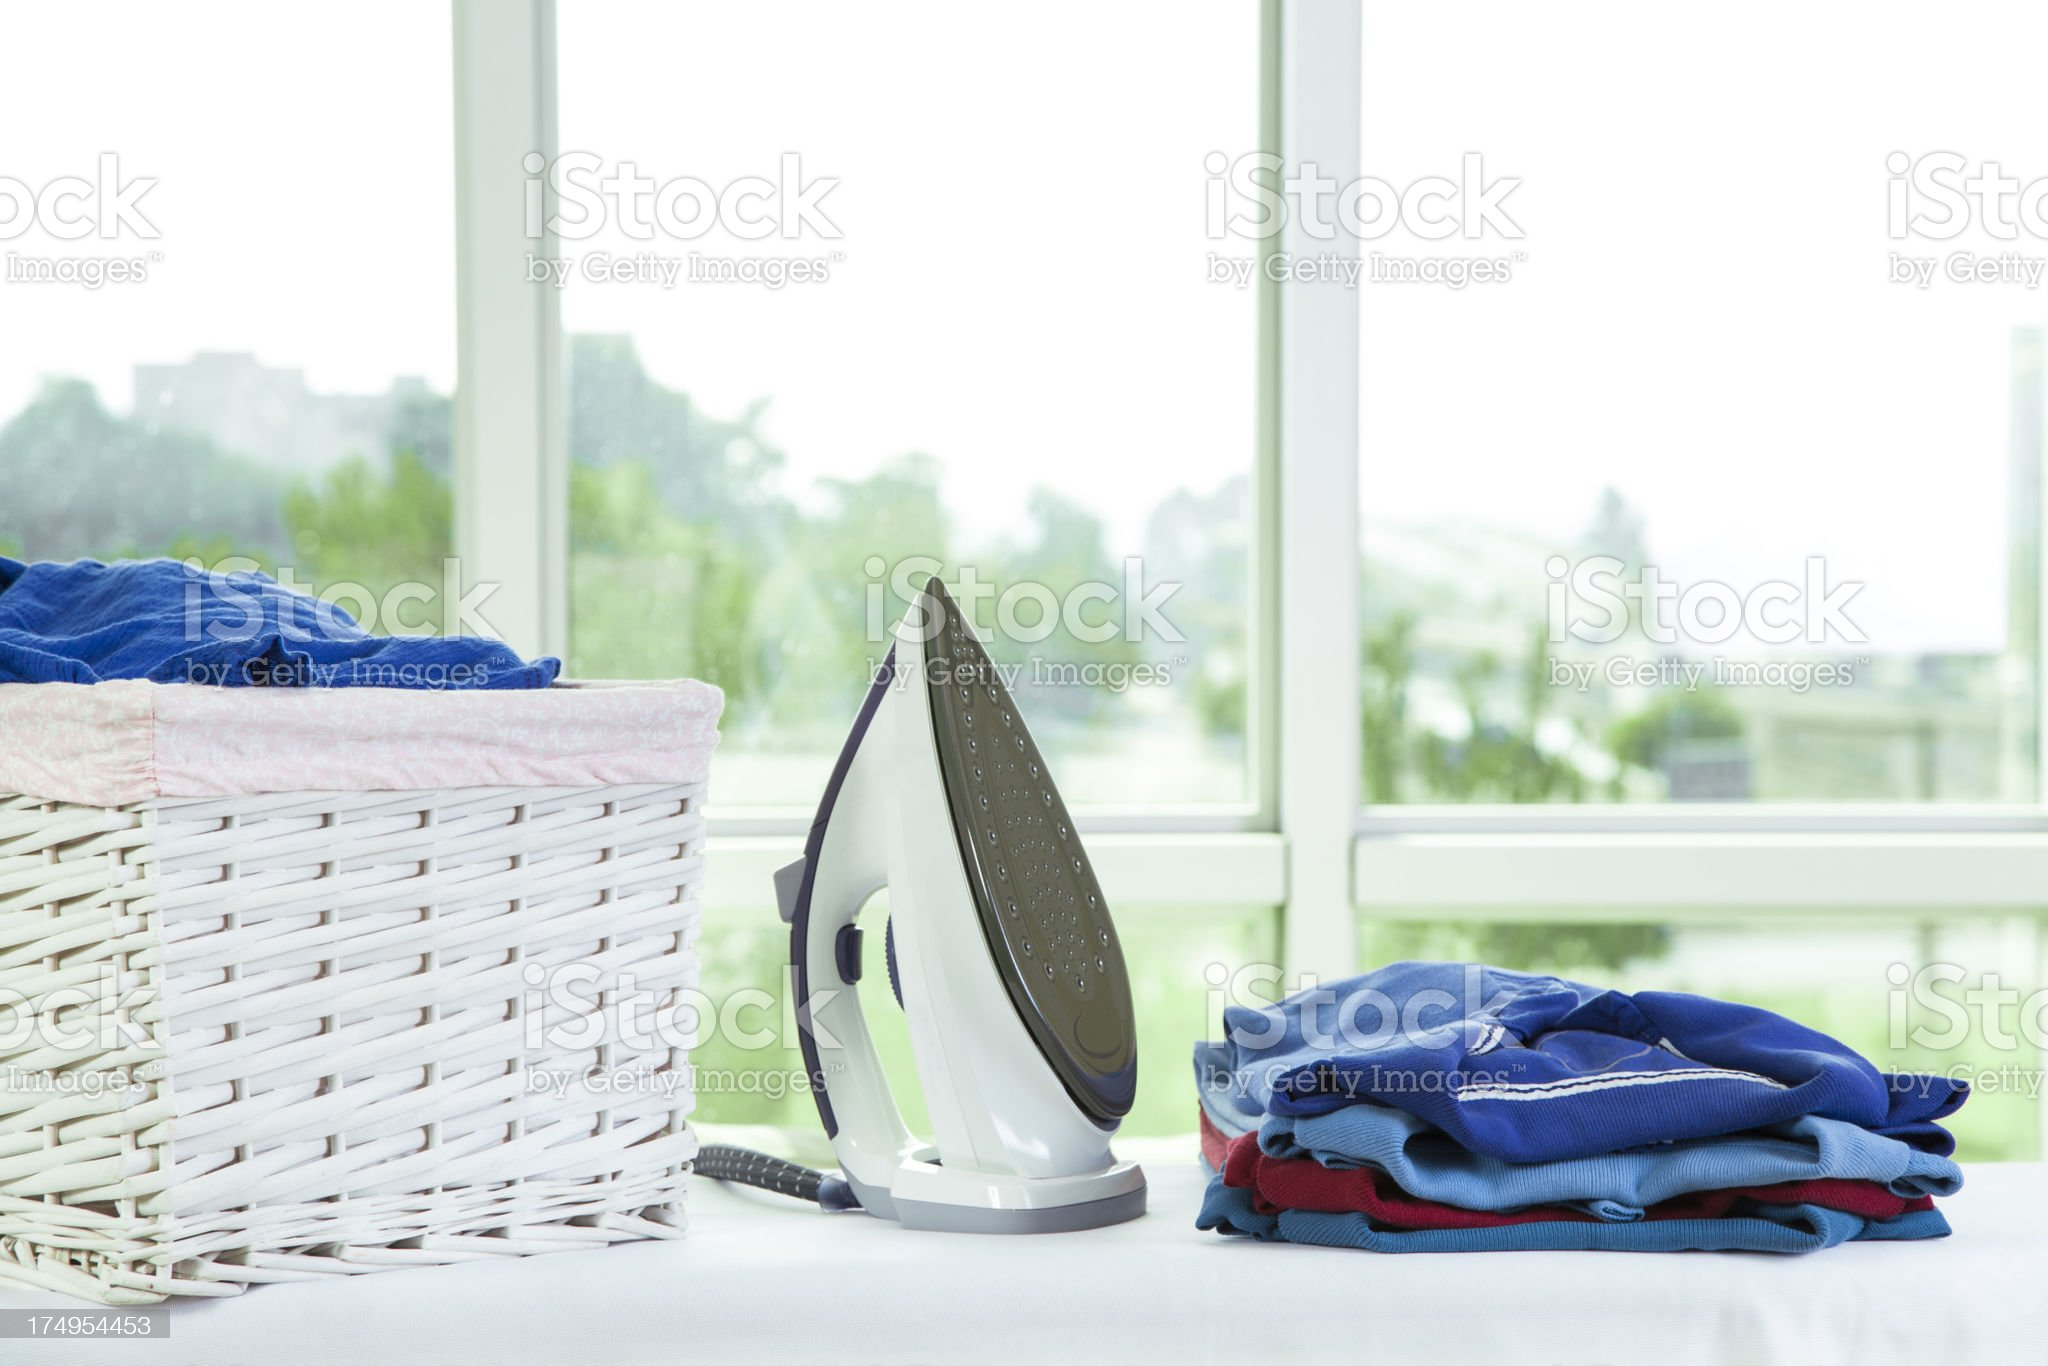 Ironing Chore royalty-free stock photo